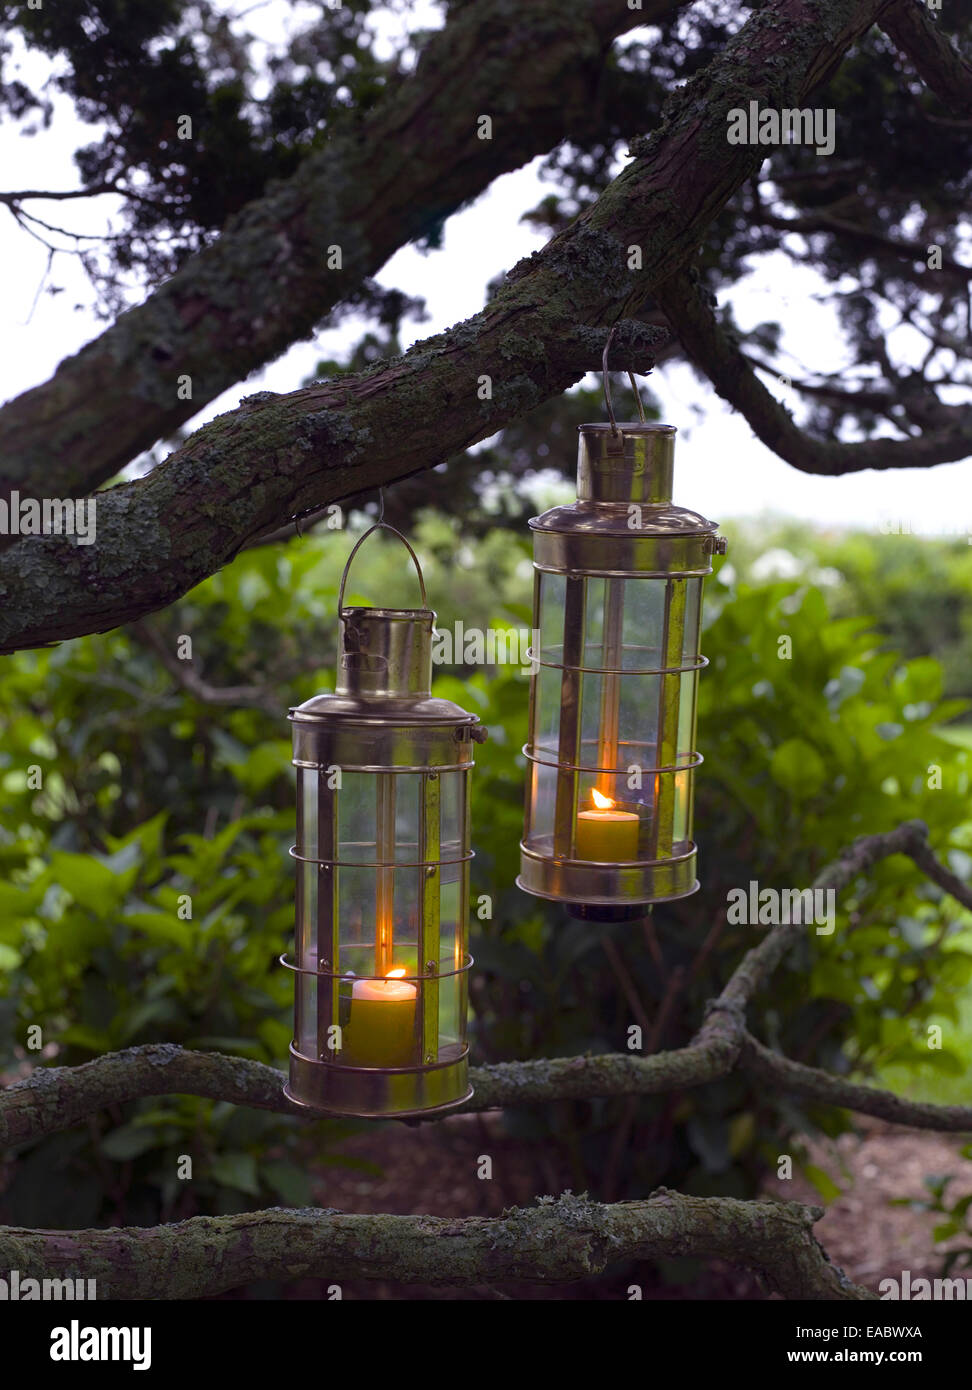 candles in lanterns hanging from tree at dusk - Stock Image